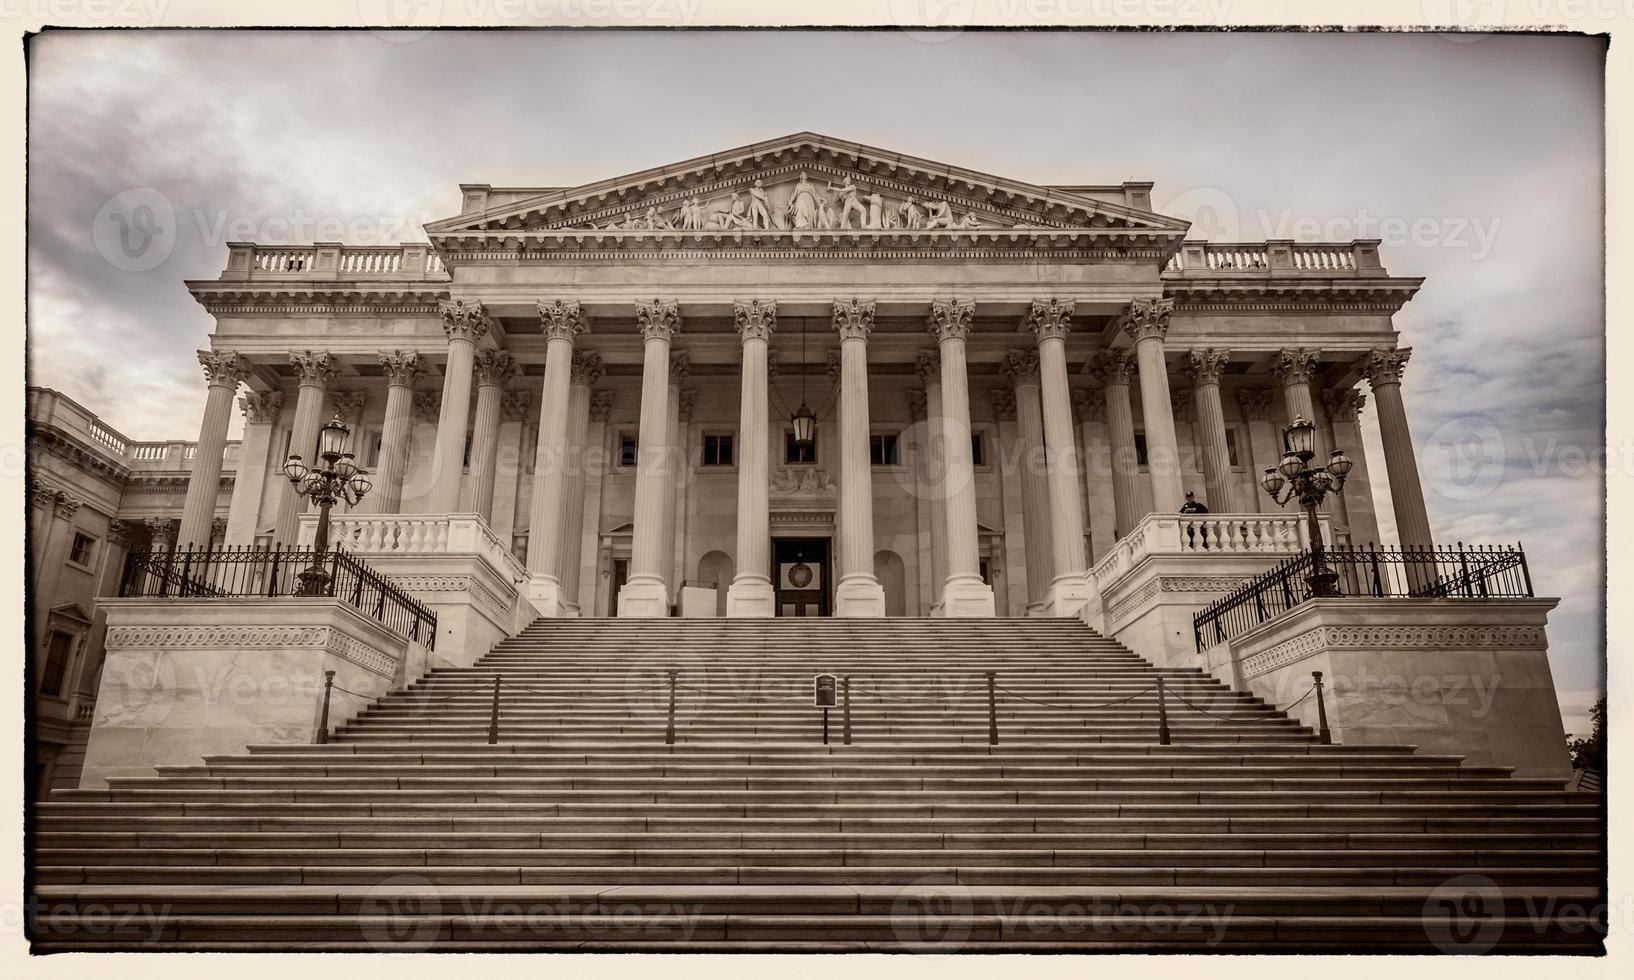 Senate Wing of the United States Capitol East Facade photo